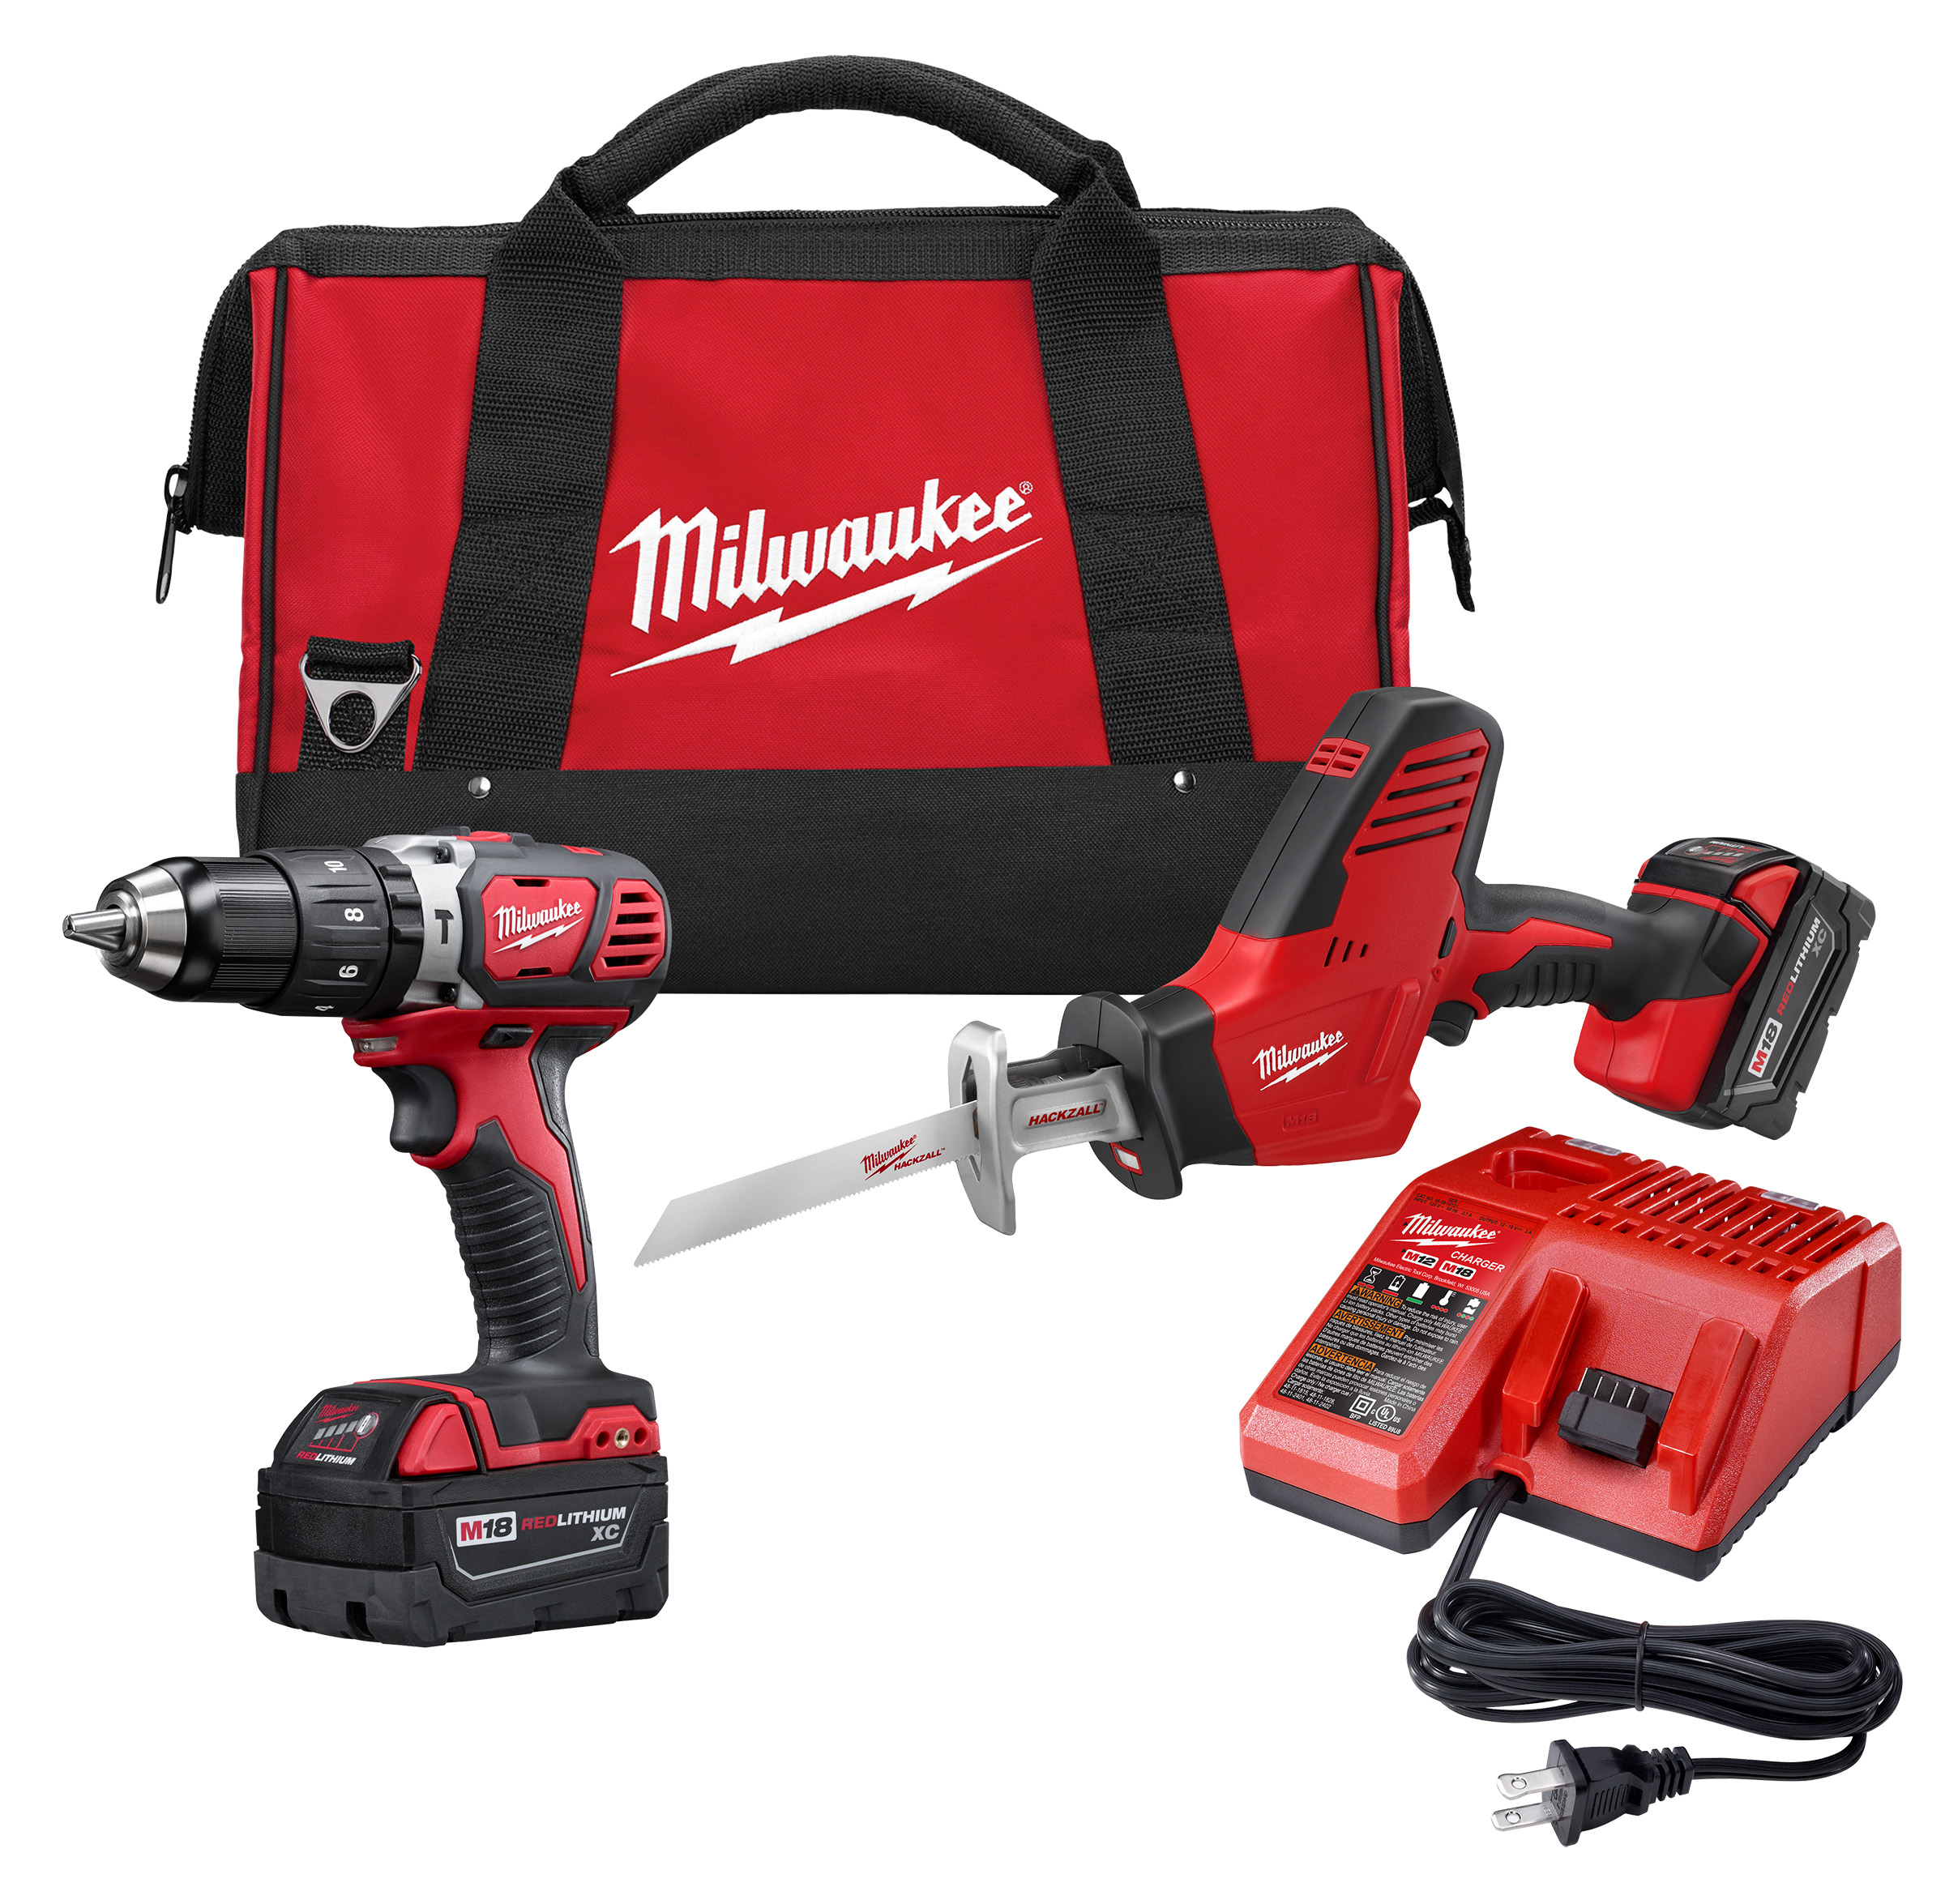 Milwaukee® M18™ 2695-22 2-Tool Cordless Combination Kit, Tools: Hammer Drill, Reciprocating Saw, 18 VDC, 3 Ah Lithium-Ion REDLITHIUM™ Battery, Keyless Blade